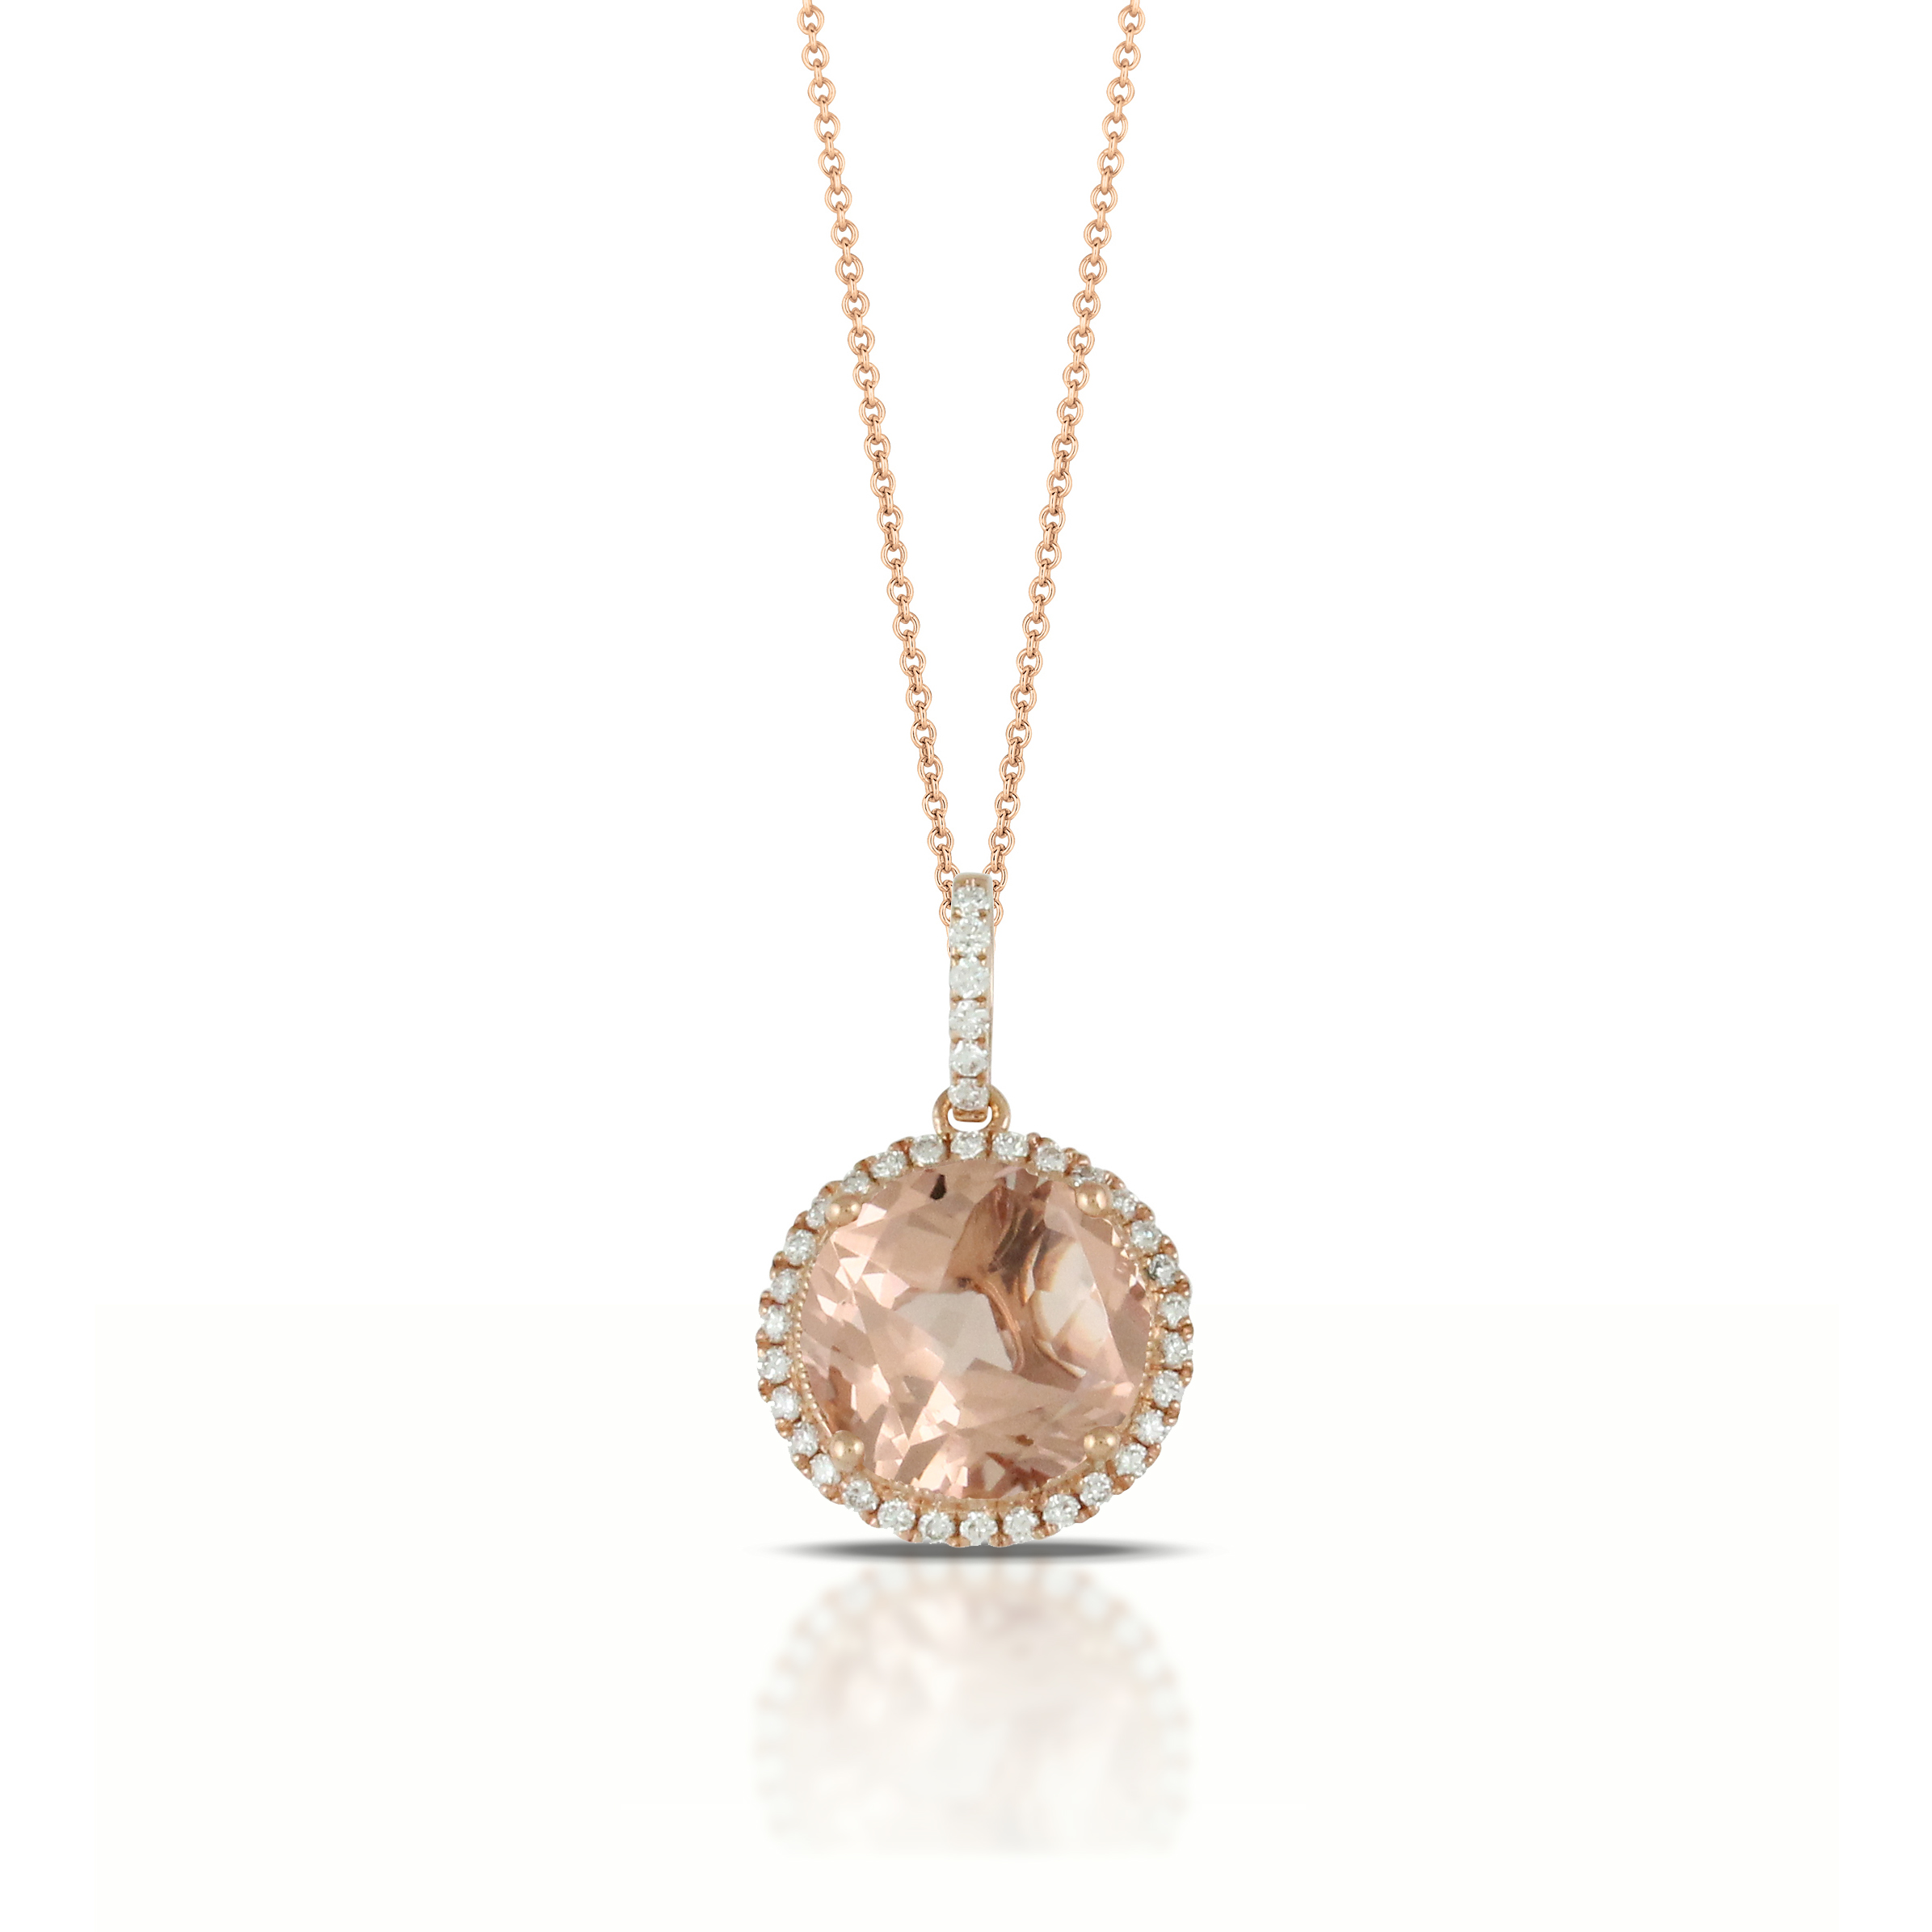 trove cushion fashion pink watches rose overstock shape round shipping free product gold ct necklace diamond cali in pendant today jewelry morganite